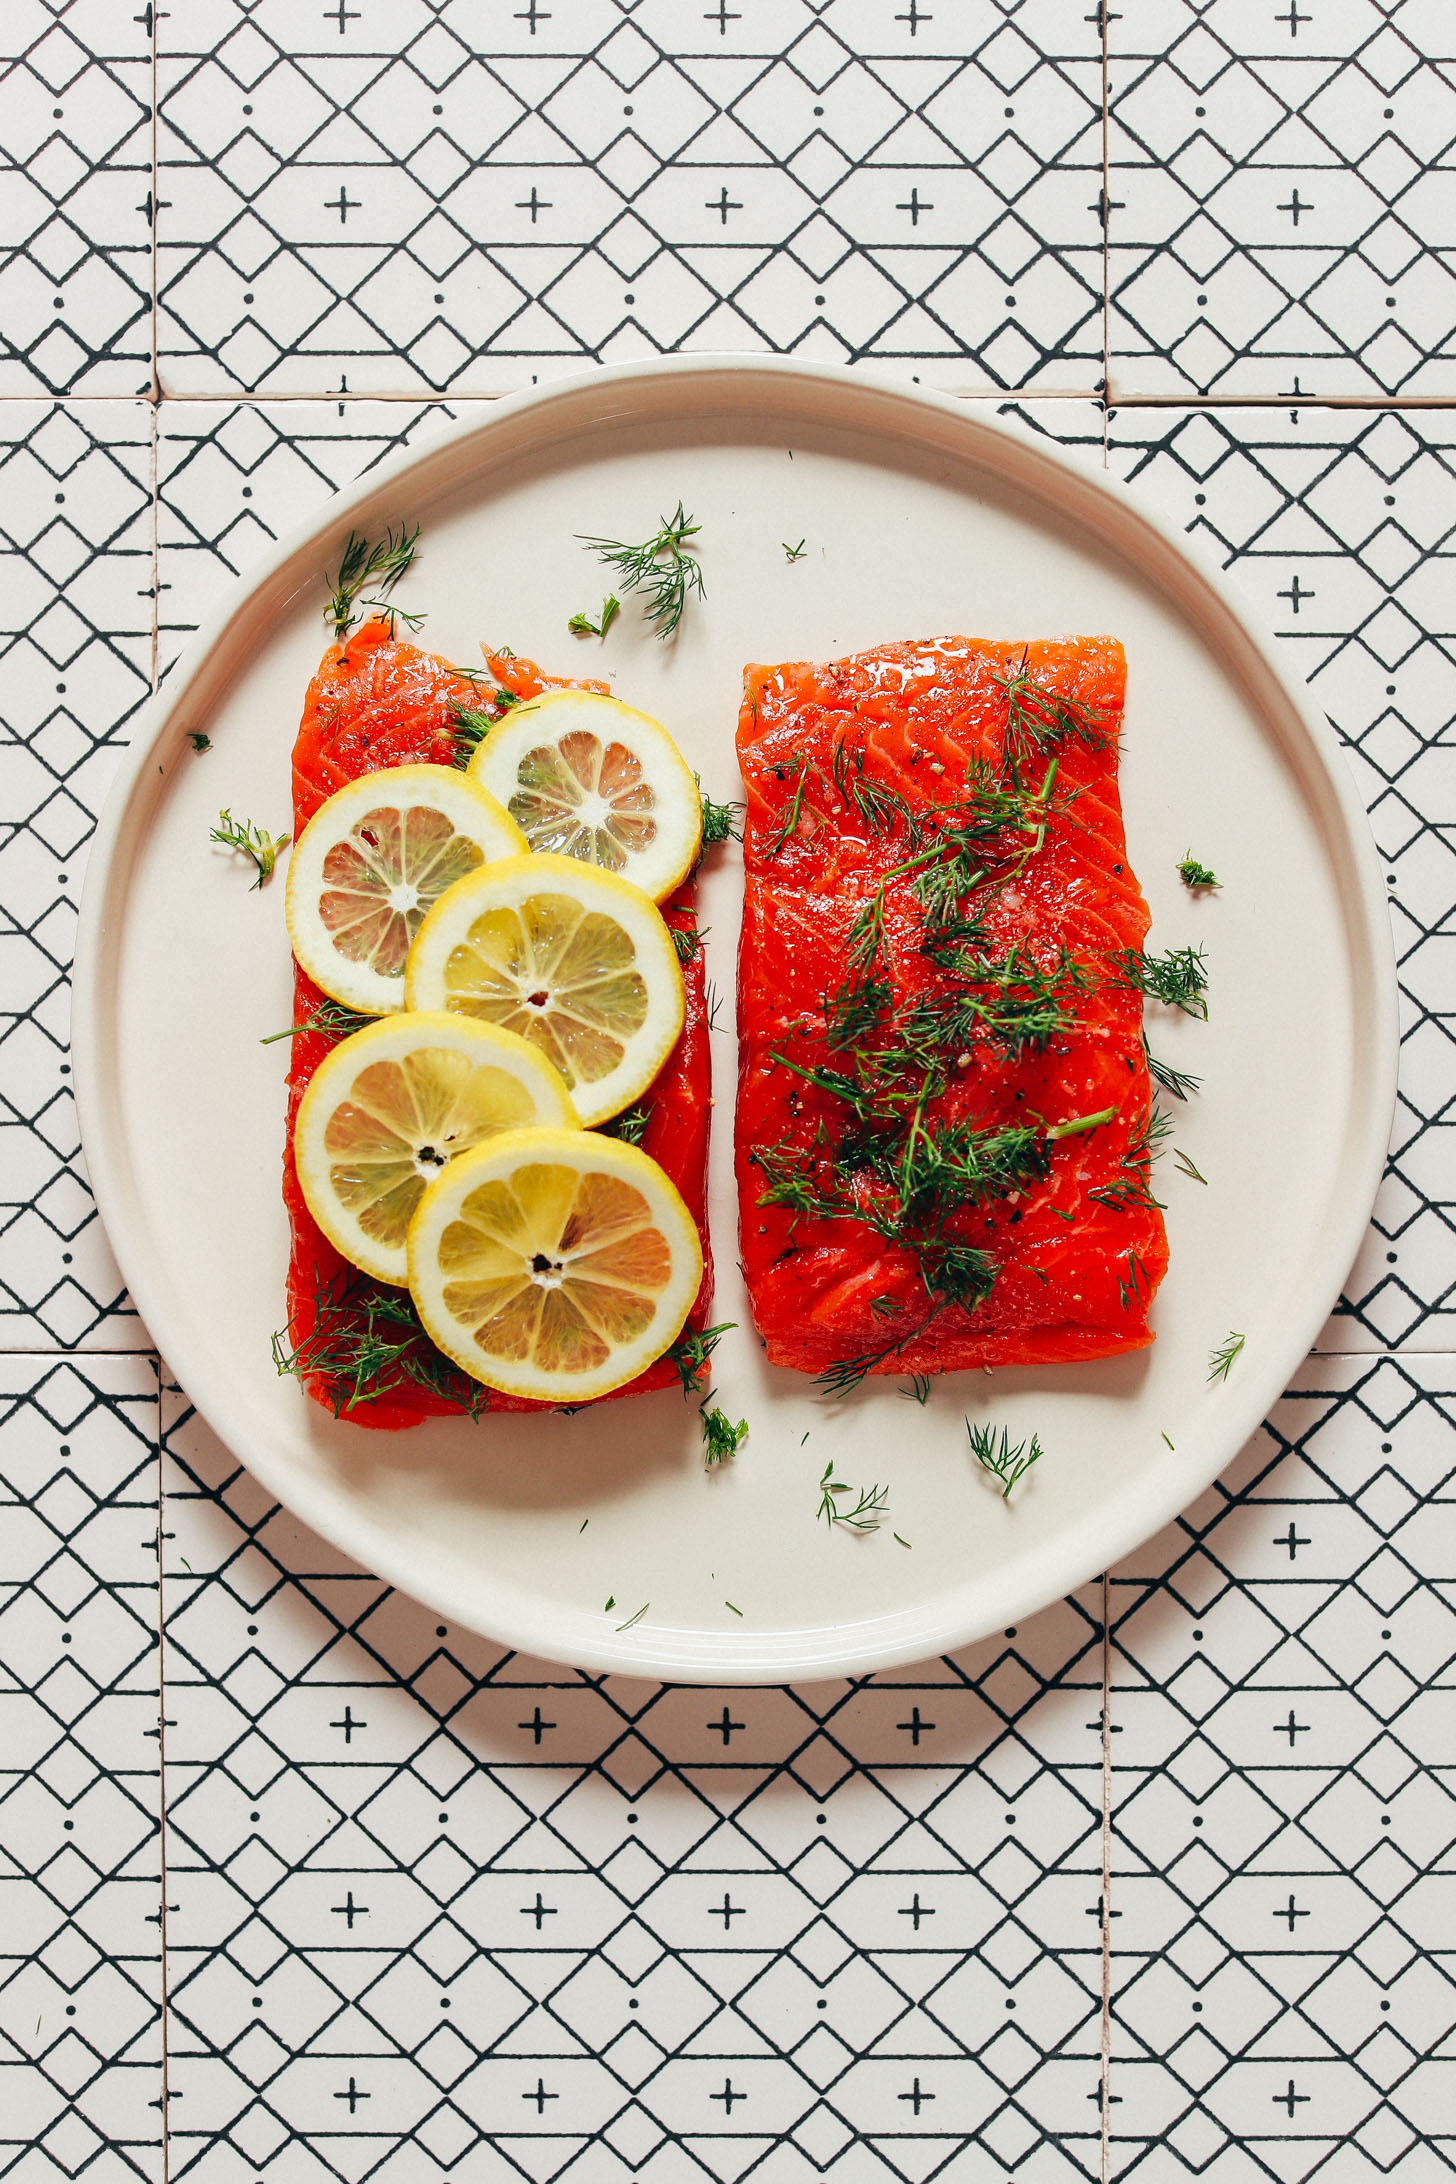 Two filets of salmon; one topped with dill and the other with lemon slices and dill